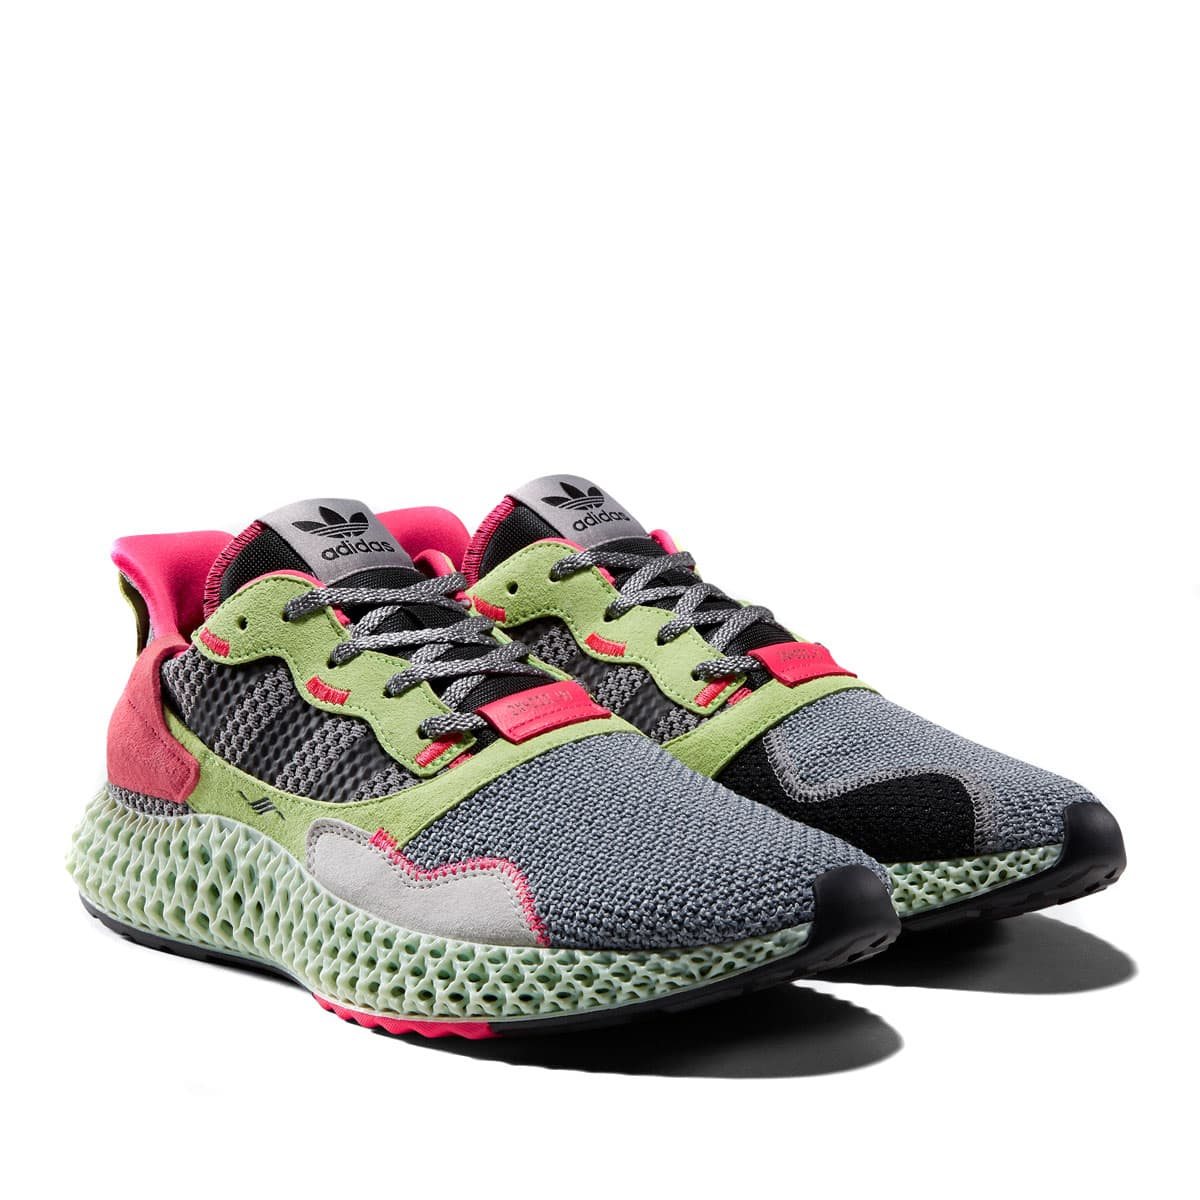 adidas Originals ZX 4000 4D GREY THREE/CORE BLACK/HI-RES YELLOW 19FW-S_photo_large